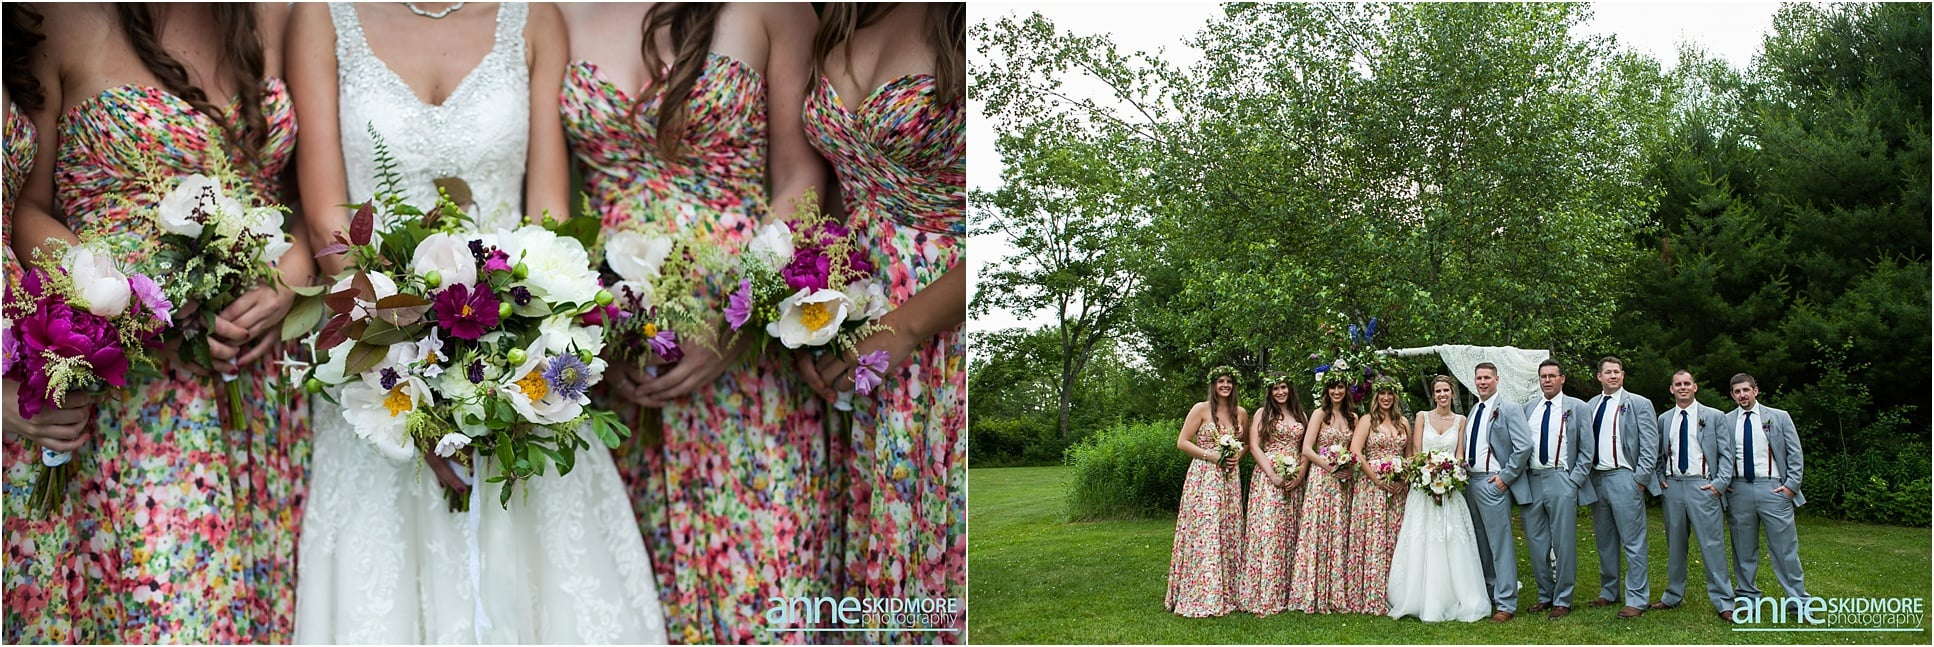 BISHOP_FARM_WEDDING__037